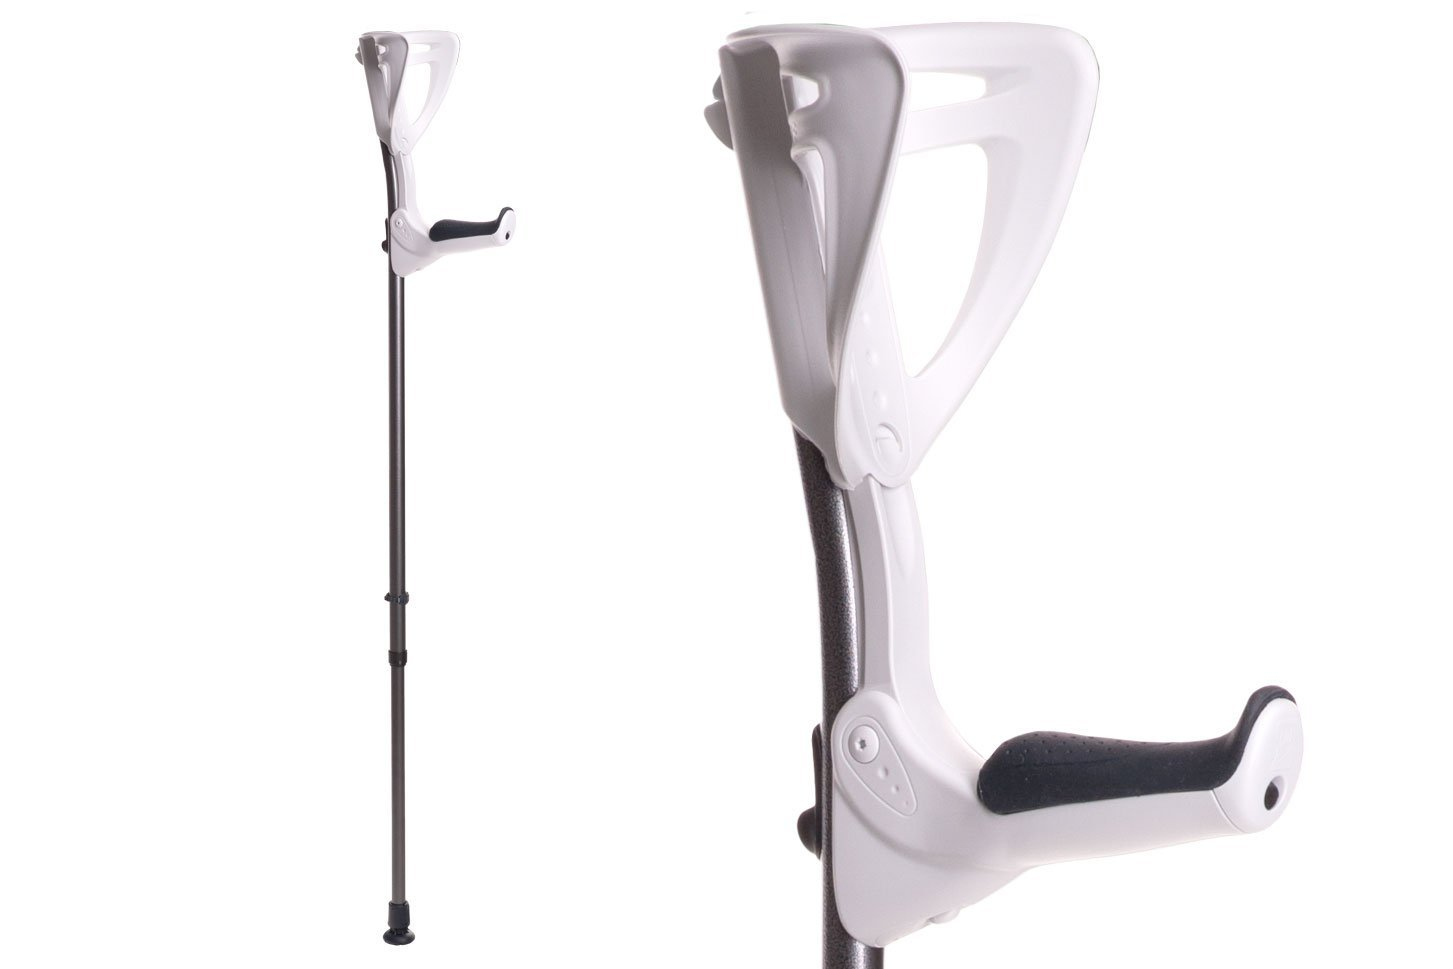 Ergotech Lightweight Forearm Crutches By FDI (Size: 4'4-6'7) 1 Pair/2 Crutches White